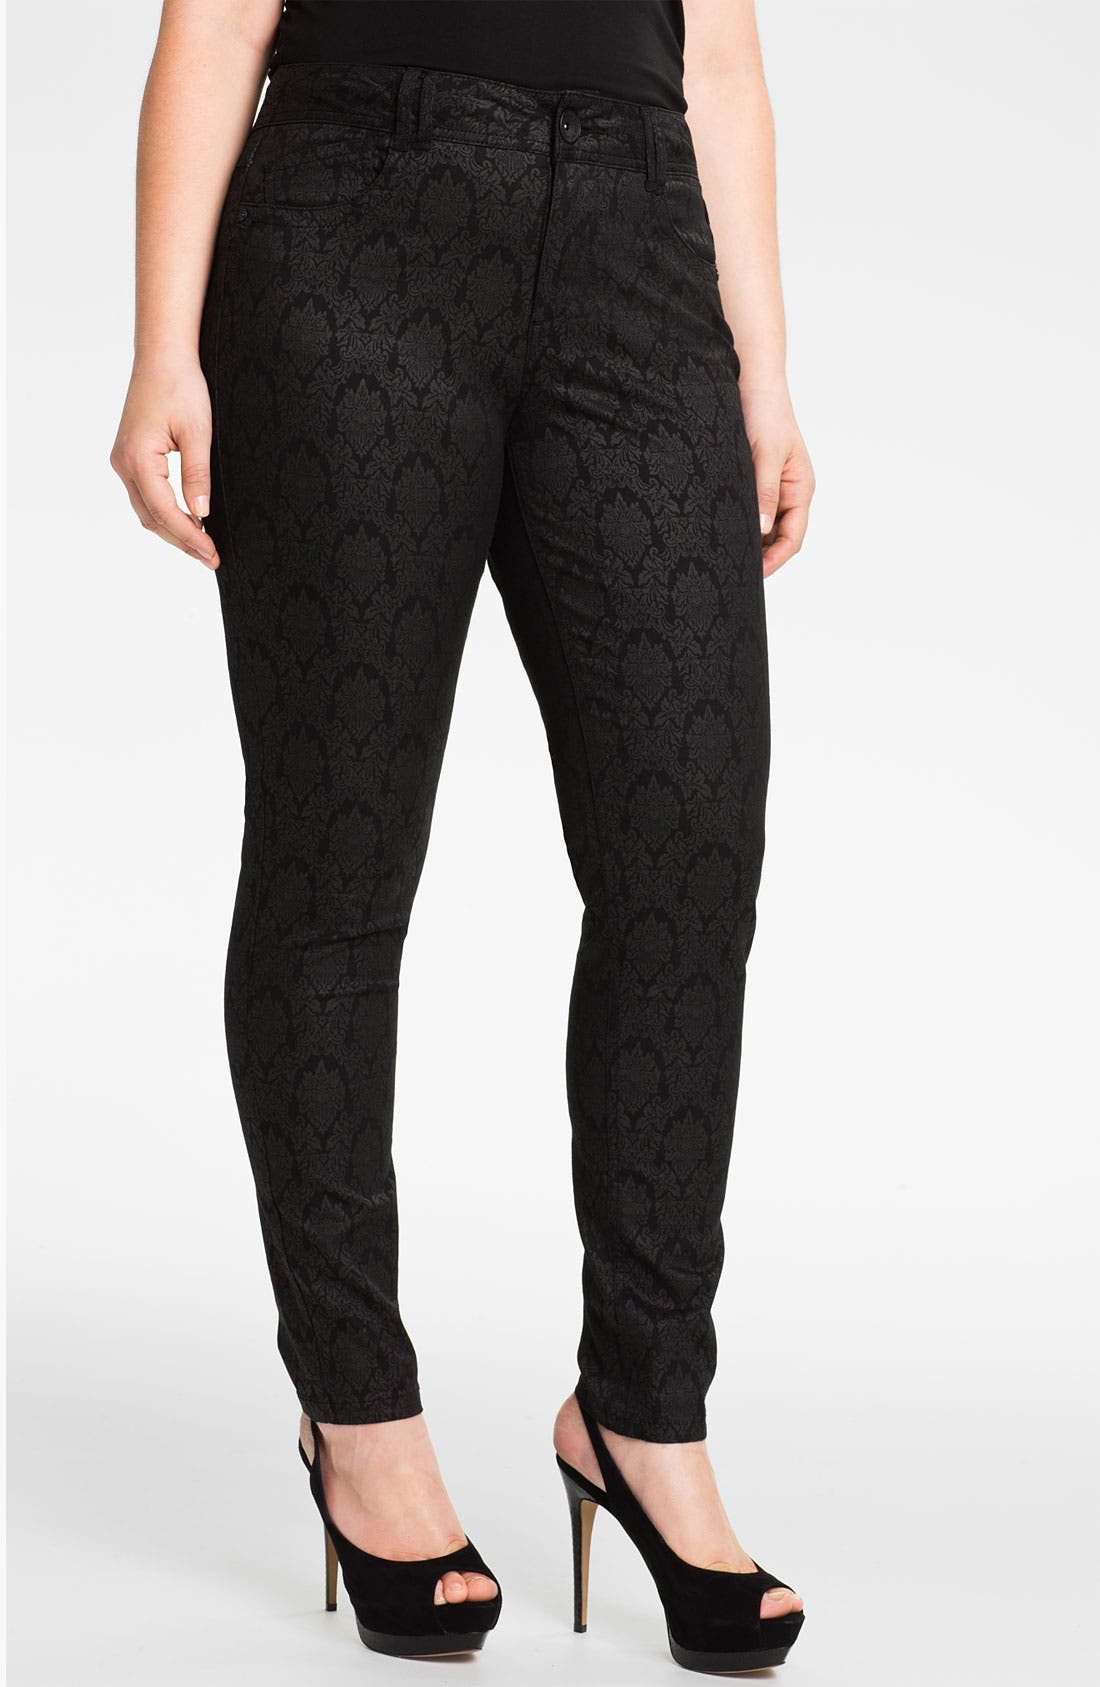 Main Image - Wit & Wisdom Brocade Denim Leggings (Plus) (Nordstrom Exclusive)